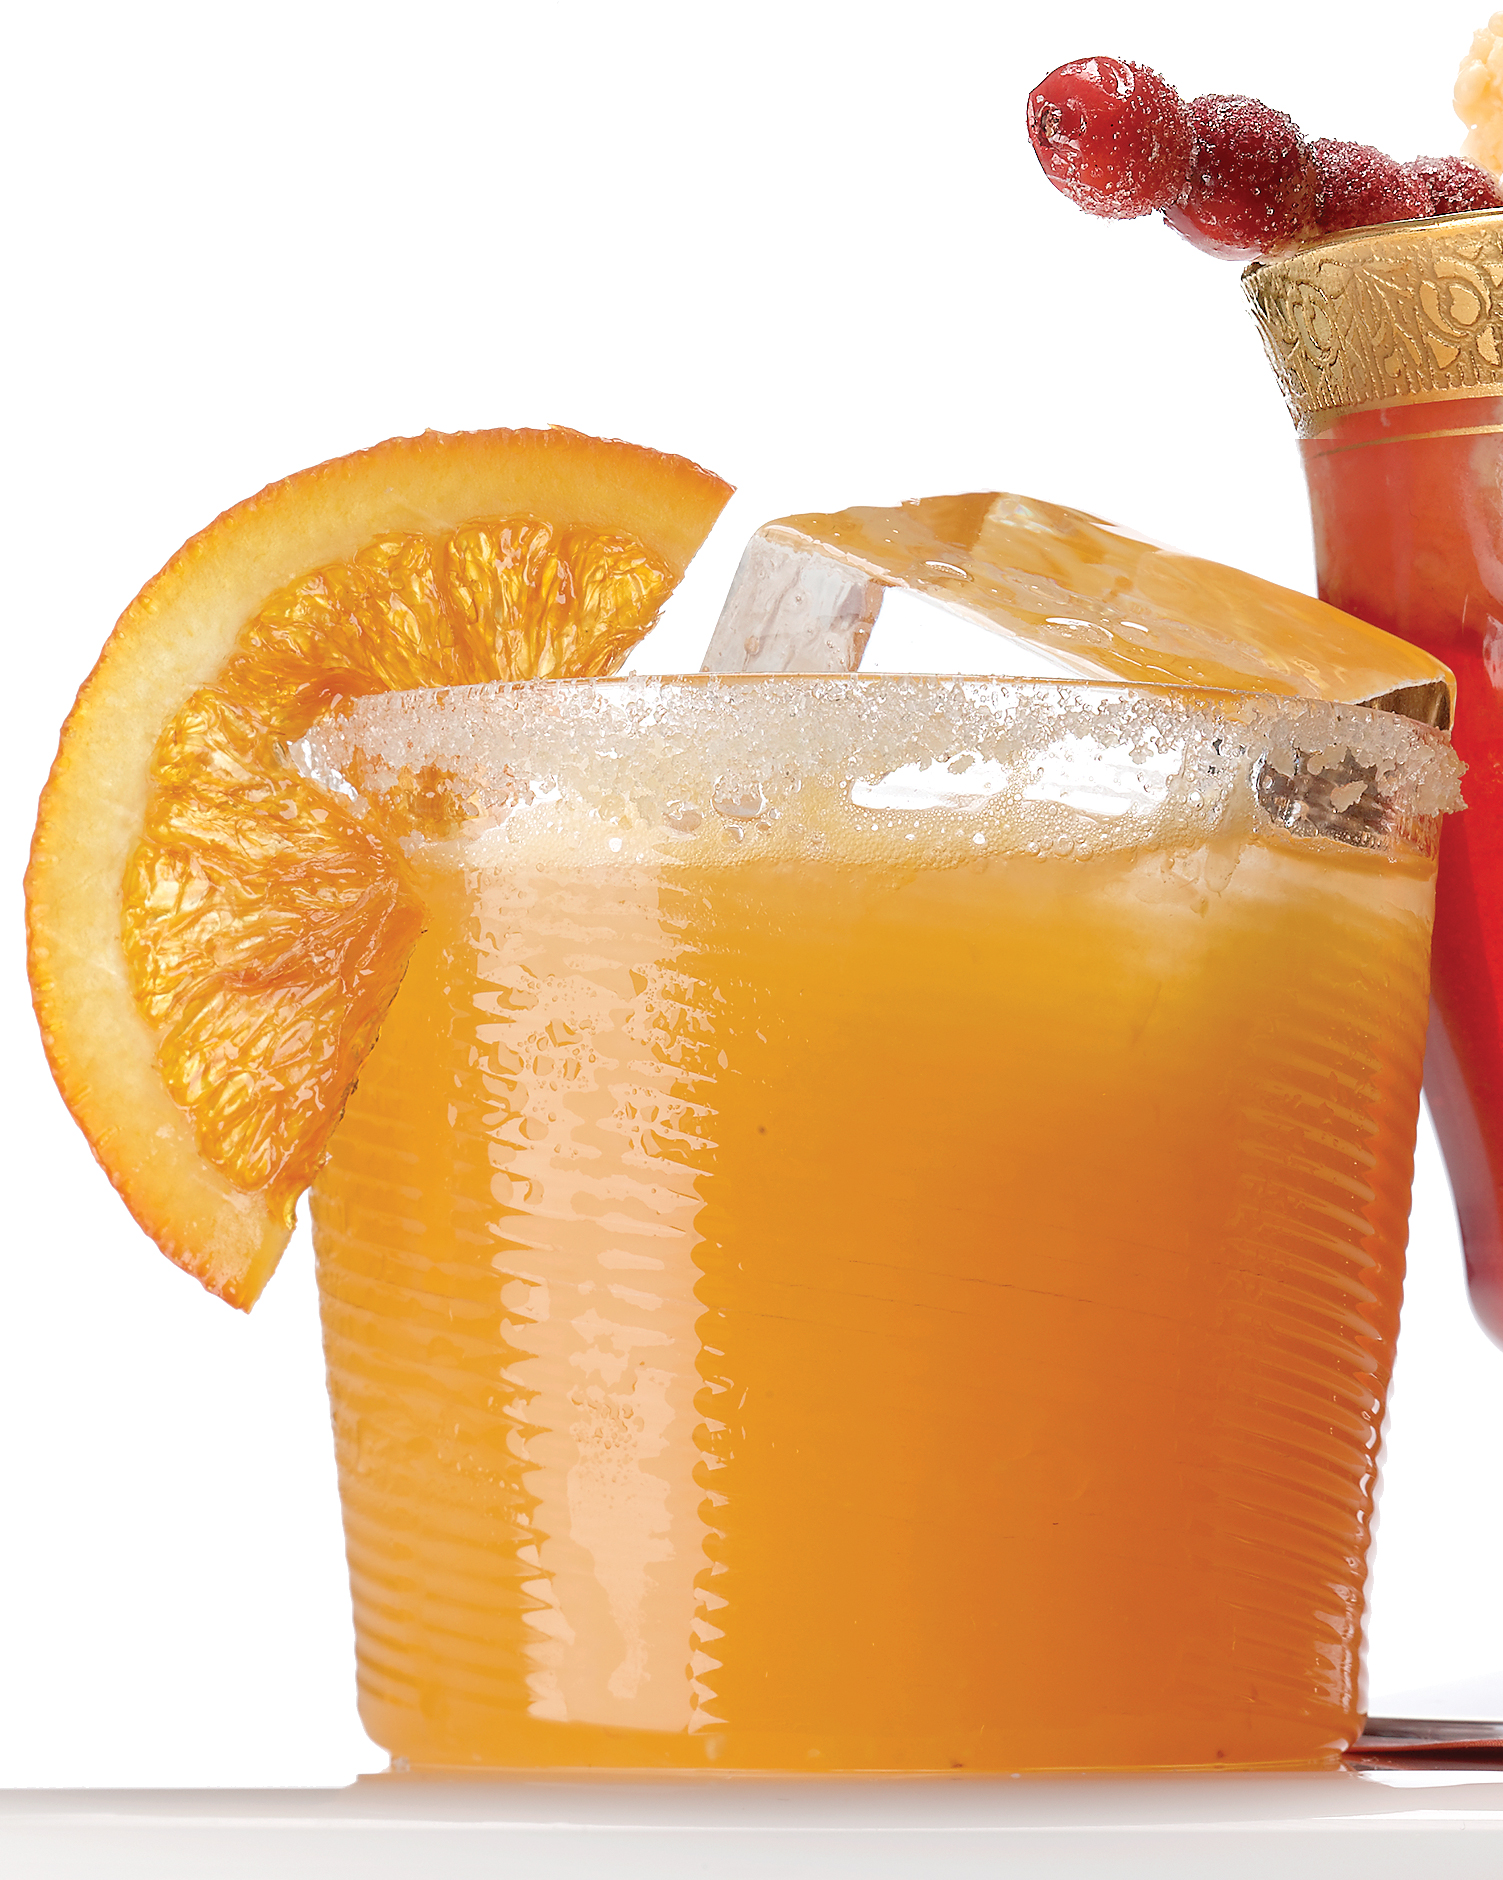 wedding-mocktail-recipes-sparkling-cider-cara-cara-orange-punch-mld104008-msl-dec08-0915.jpg